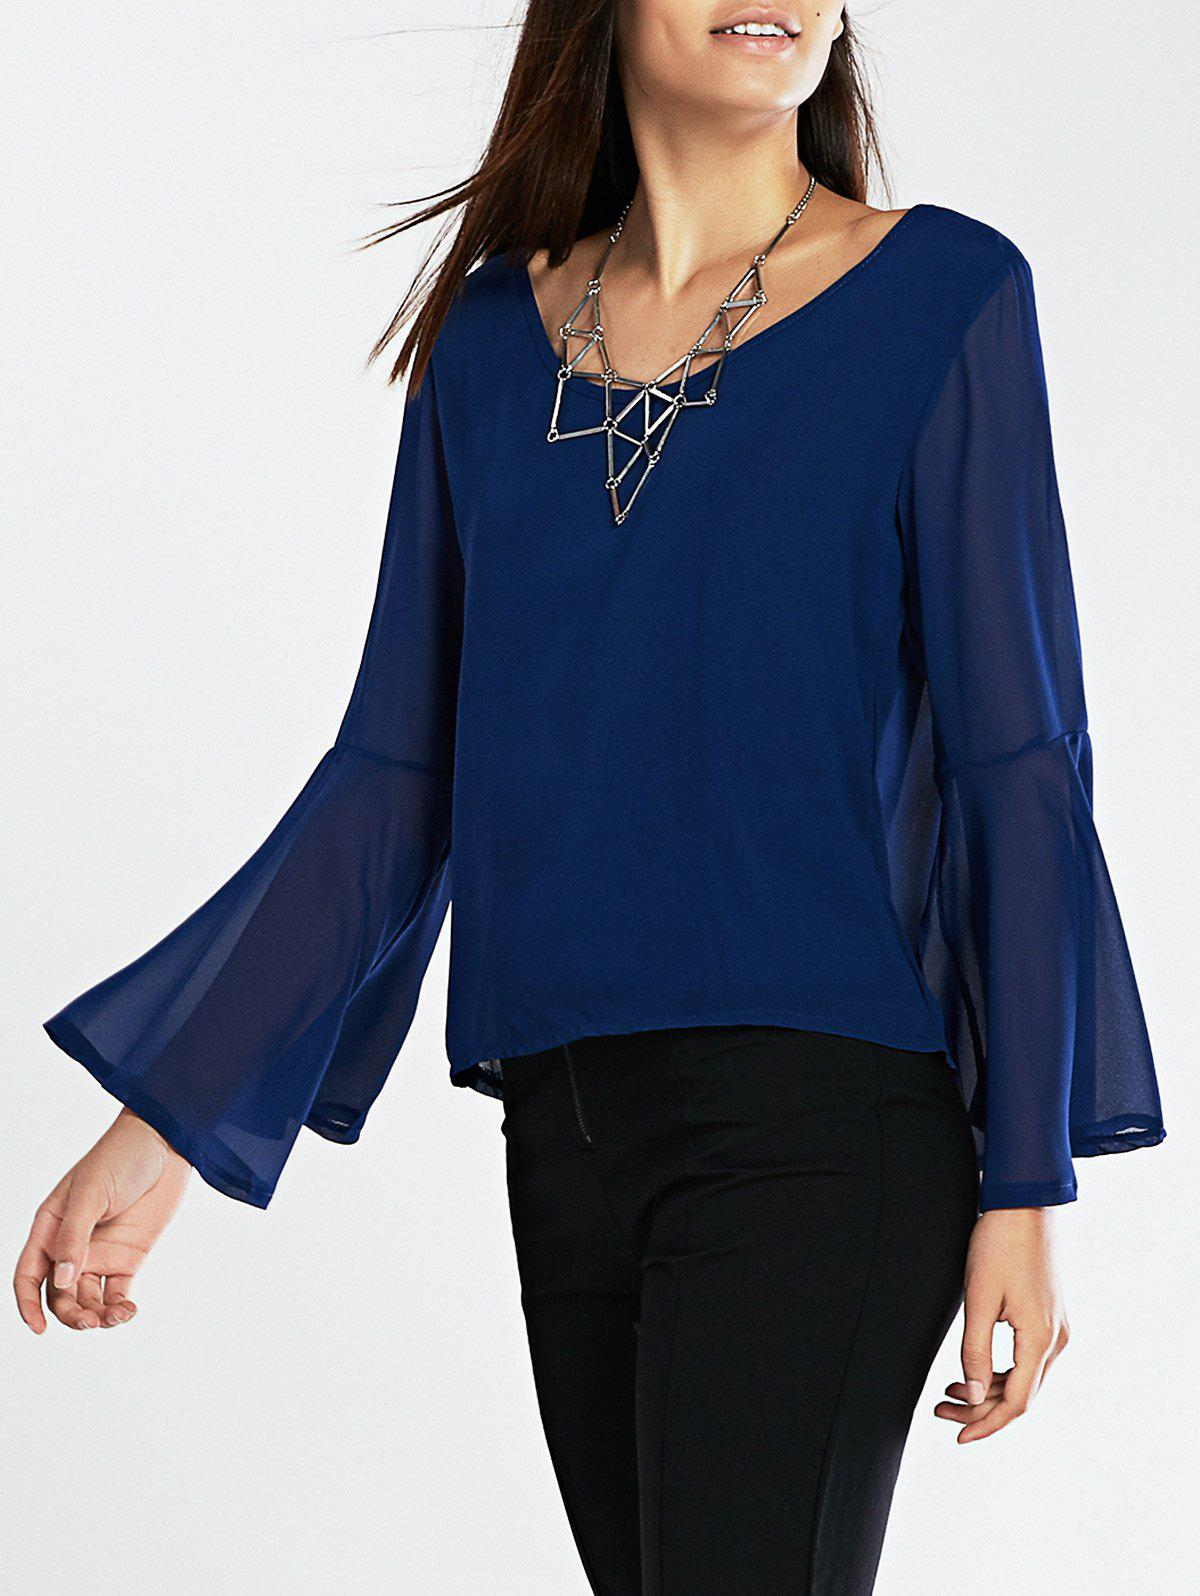 Flare Sleeves Loose-Fitting Blouse - DEEP BLUE 2XL